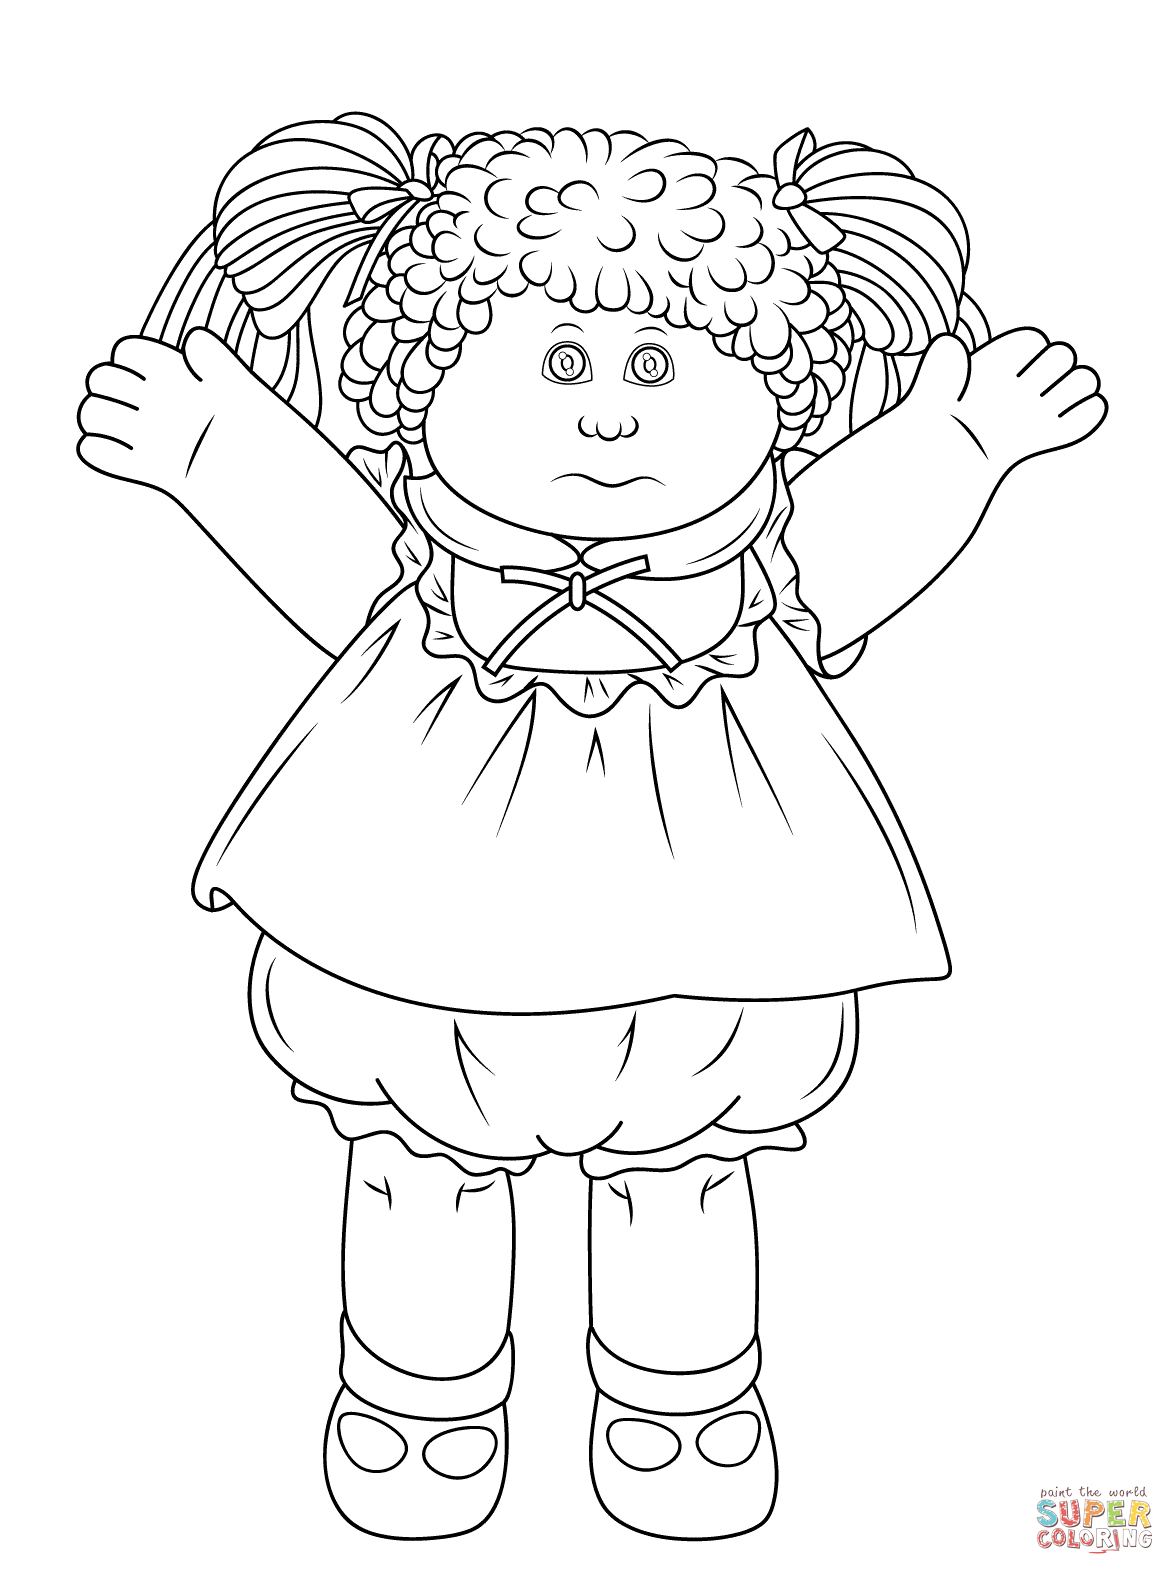 1175x1575 Cabbage Patch Doll Coloring Page Free Printable Coloring Pages